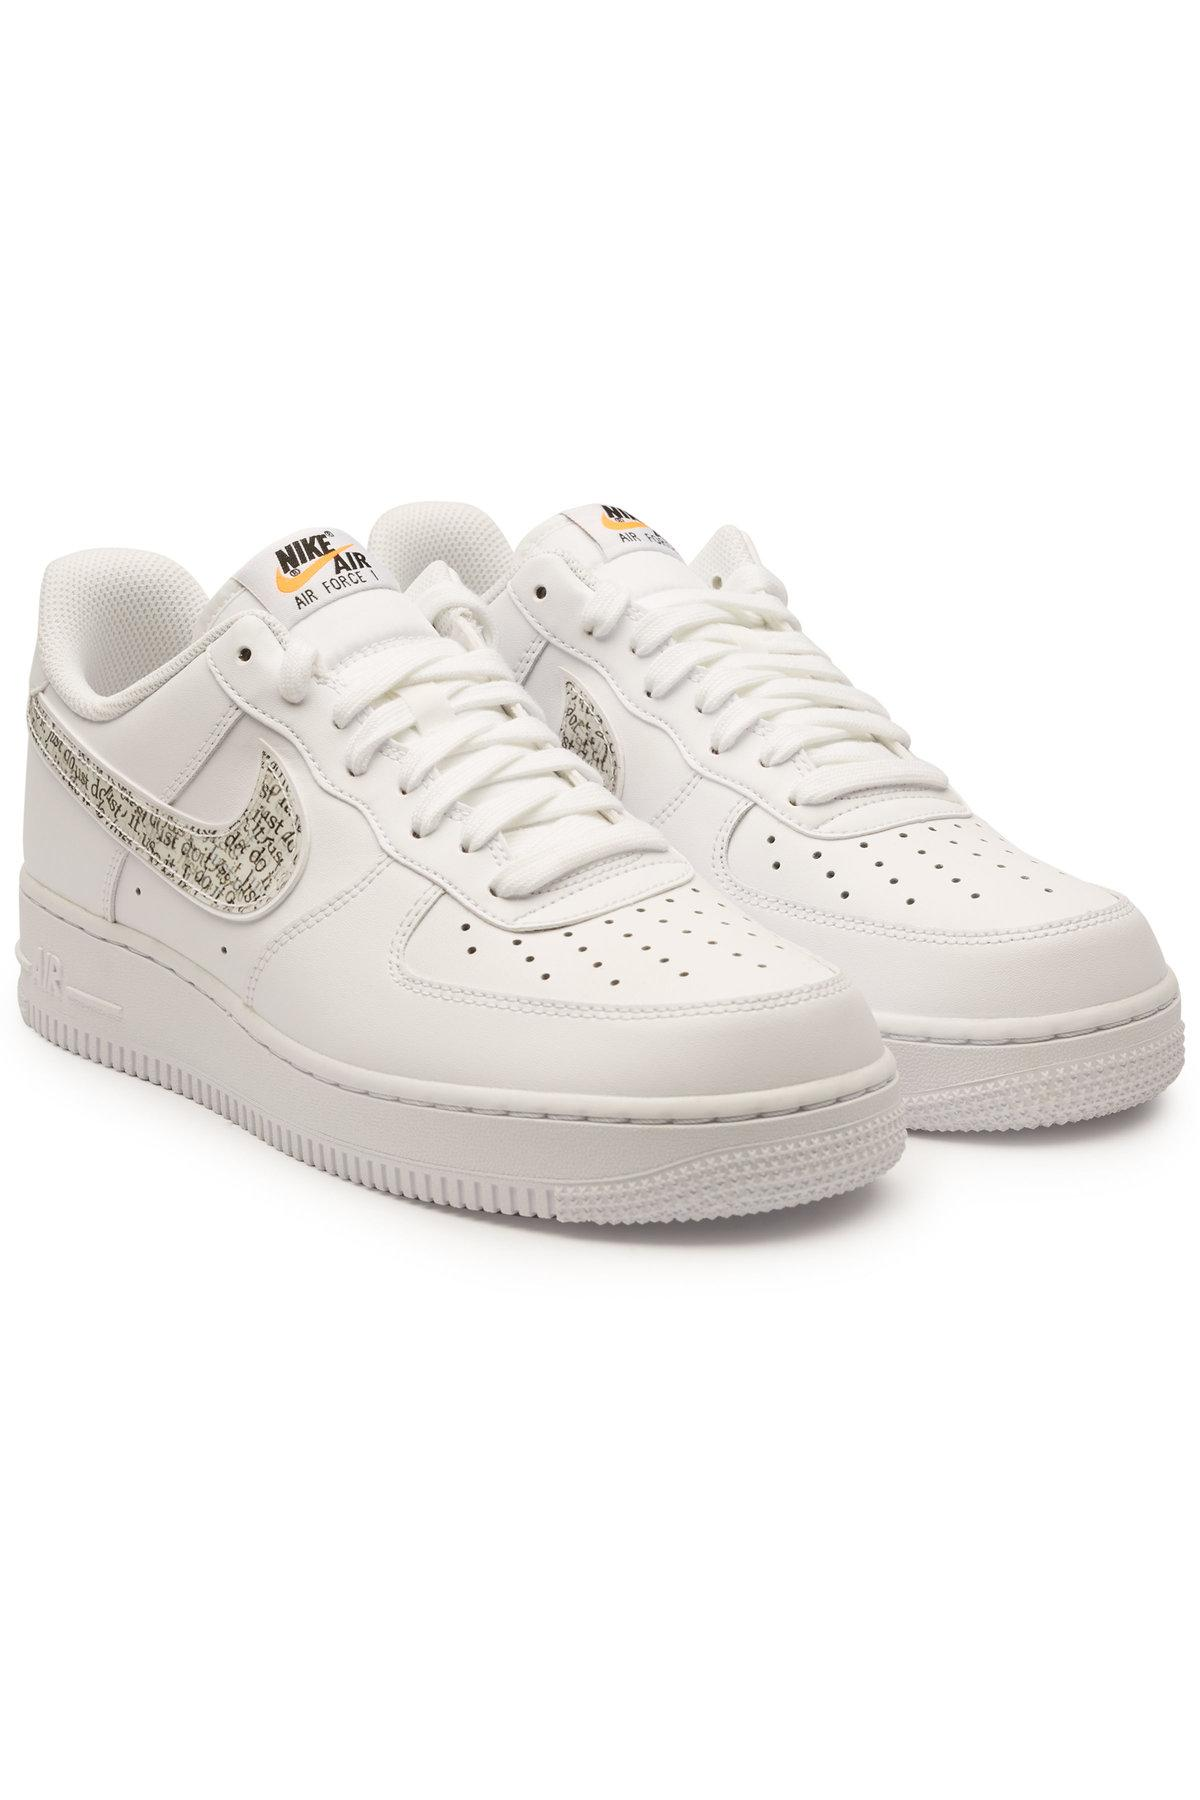 Nike Air Force 1 '07 Lv8 Jdi Lntc Leather Sneakers In White